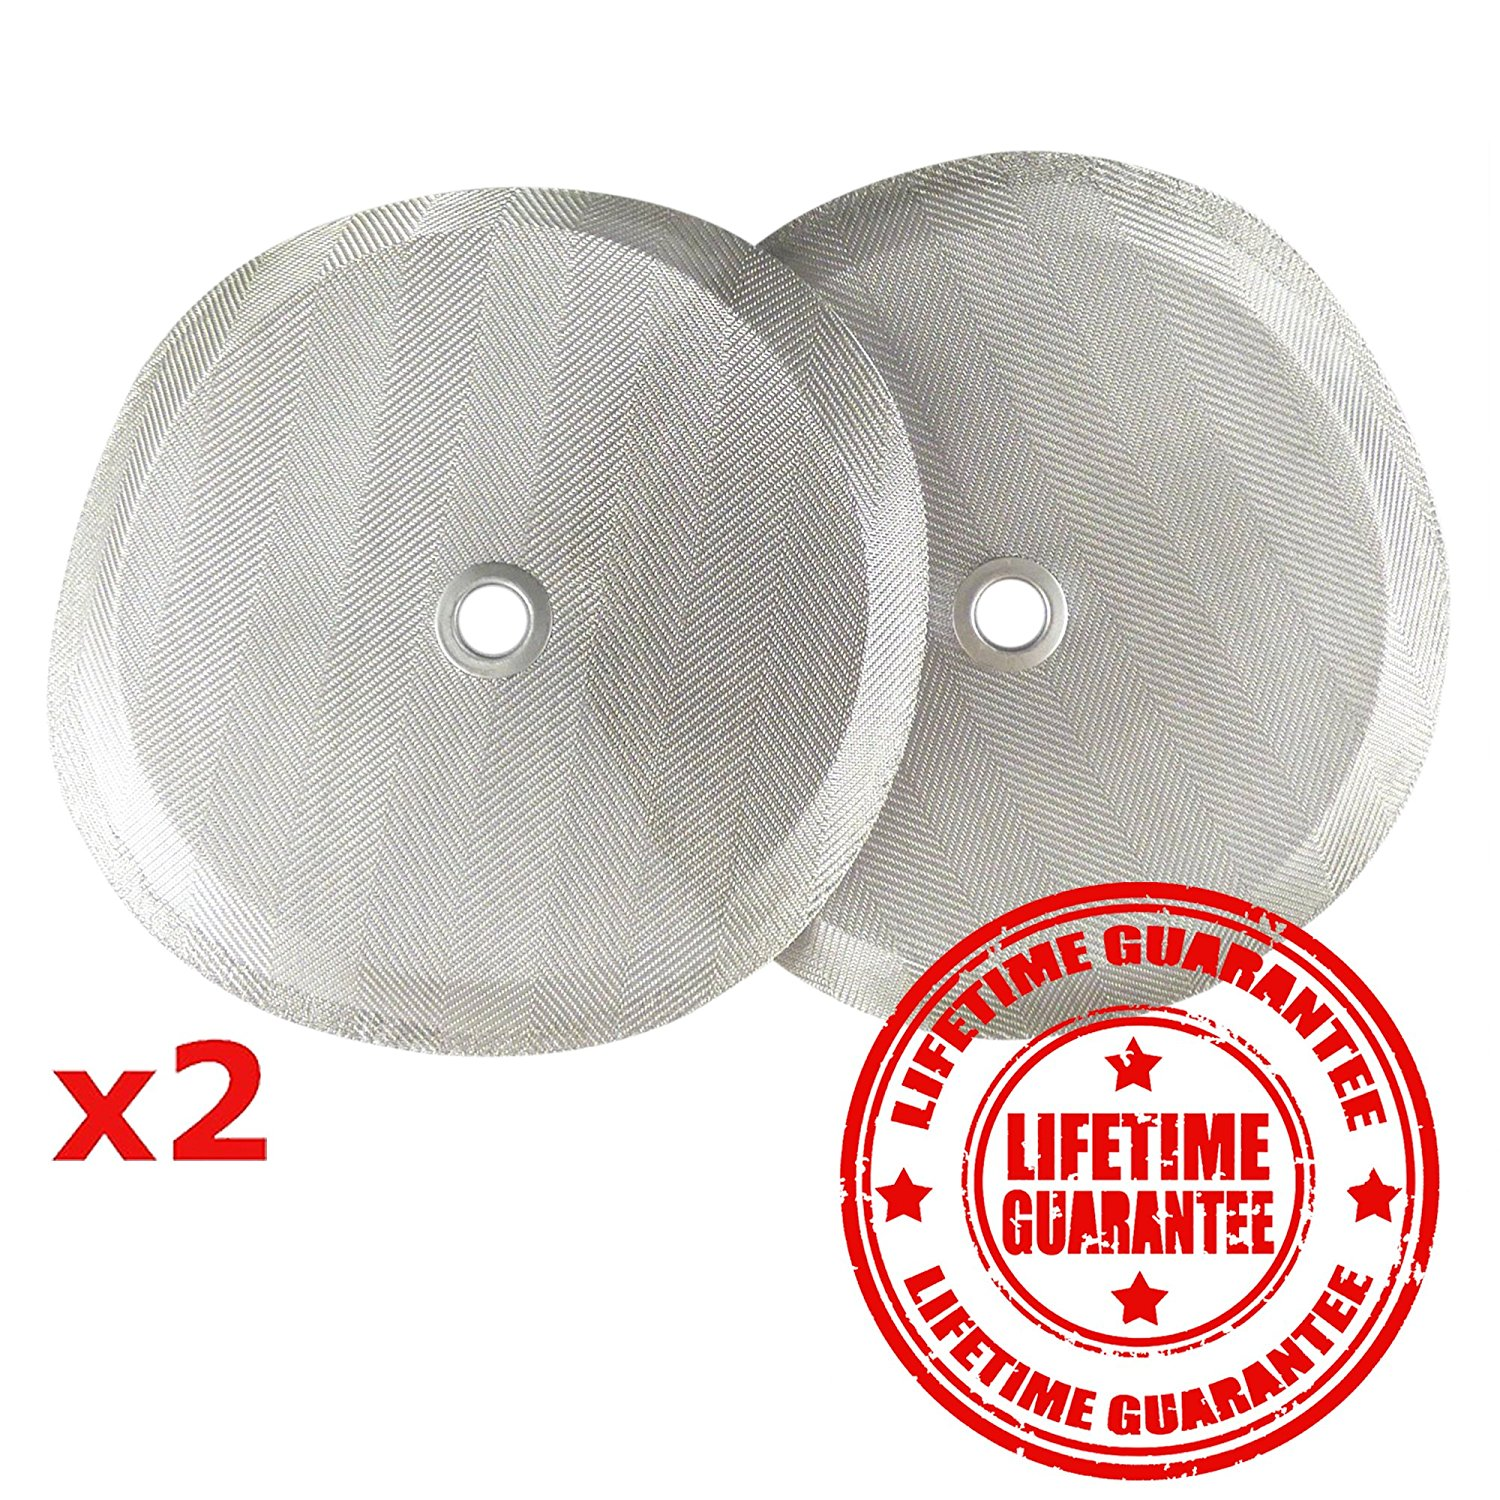 "French Press Filters by Slimm Filter: 2 Premium 4"" Reusable Stainless Steel Metal Filters for Bodum French Press Coffee Makers - Plus Bonus Coffee Tips and Recipe eBook"